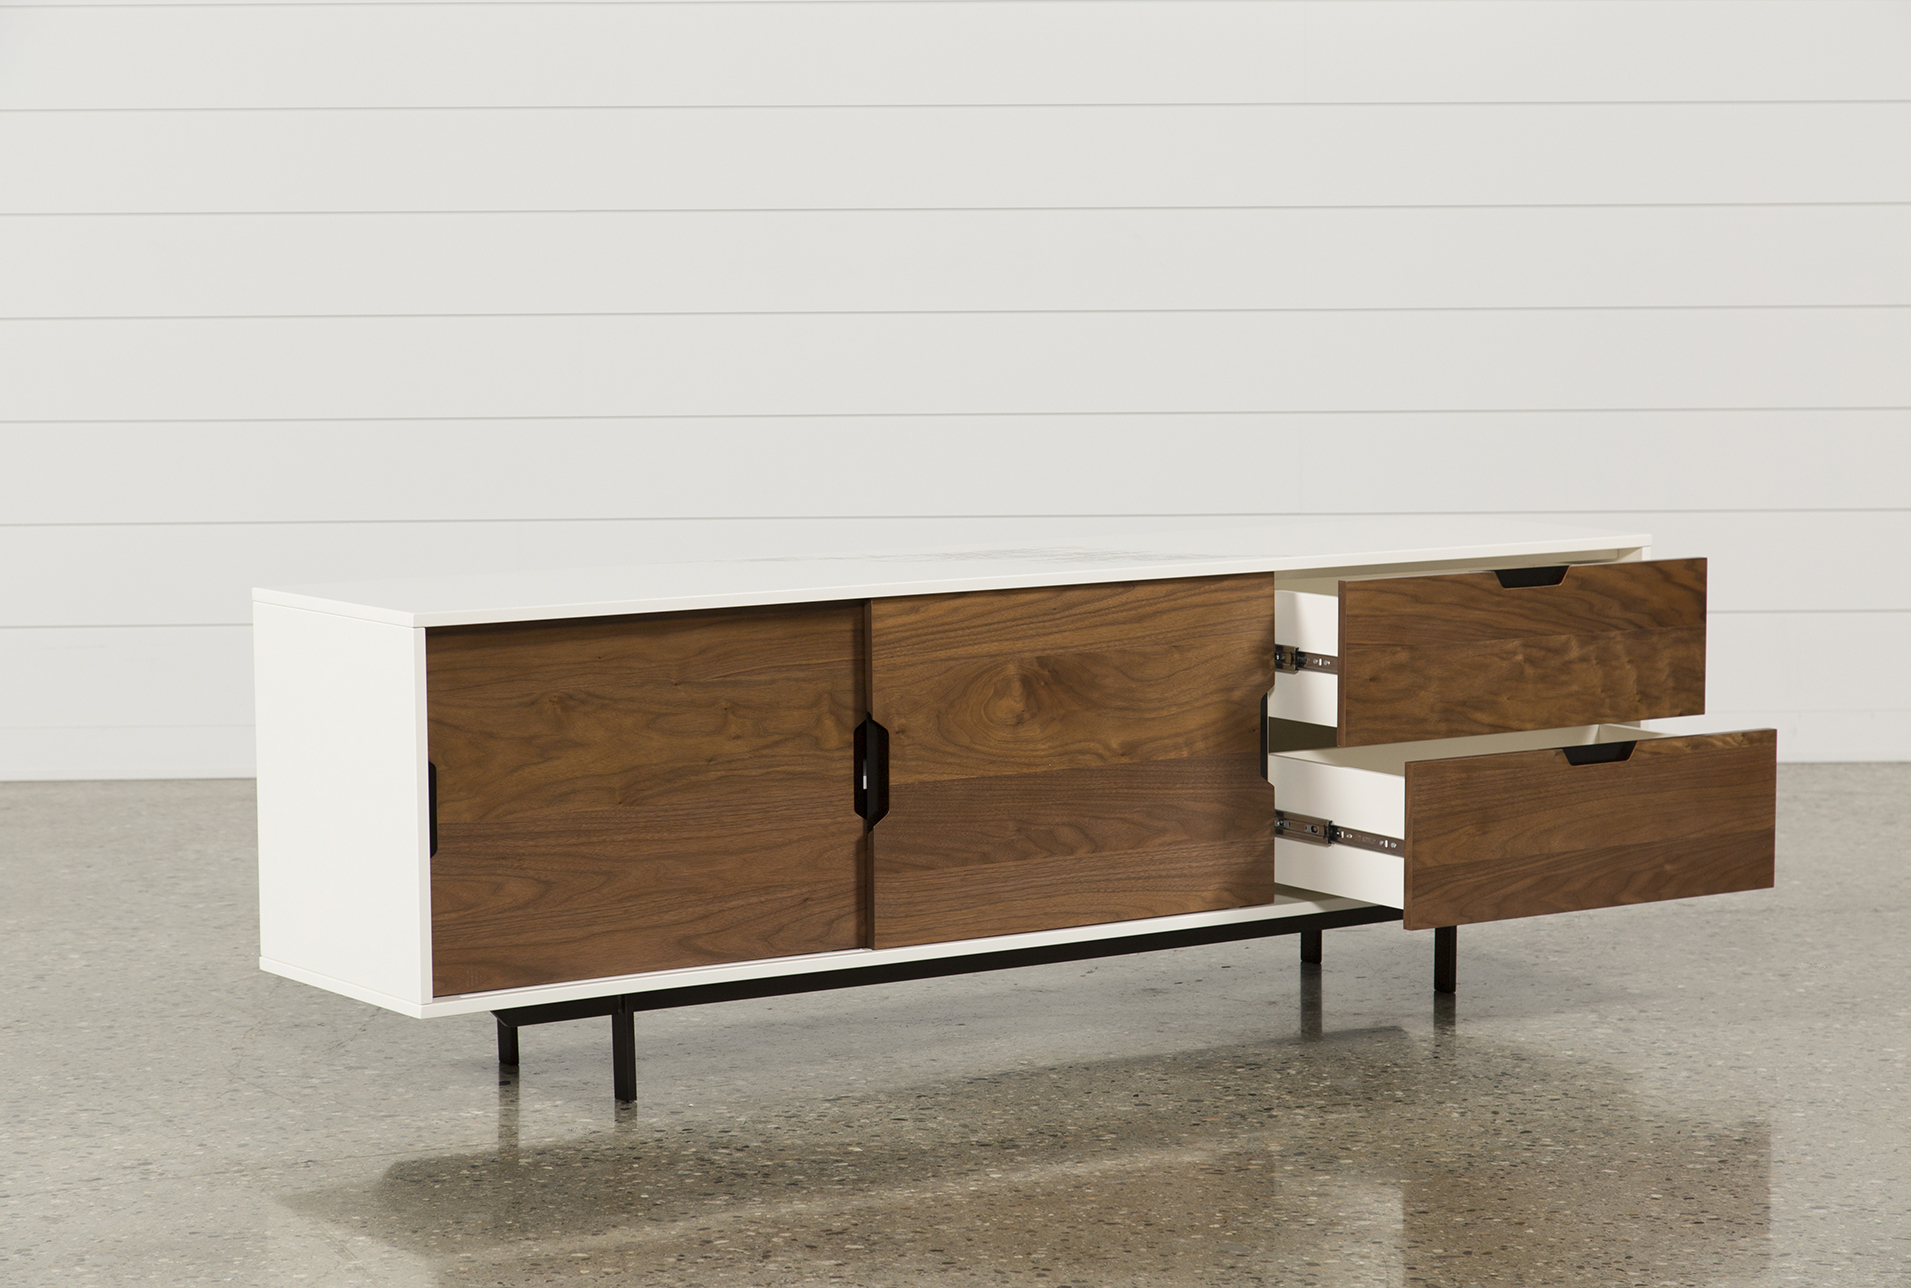 Bale 82 Inch Tv Stand In 2018   Products   Pinterest   Tvs And Console With Regard To Bale 82 Inch Tv Stands (View 13 of 30)